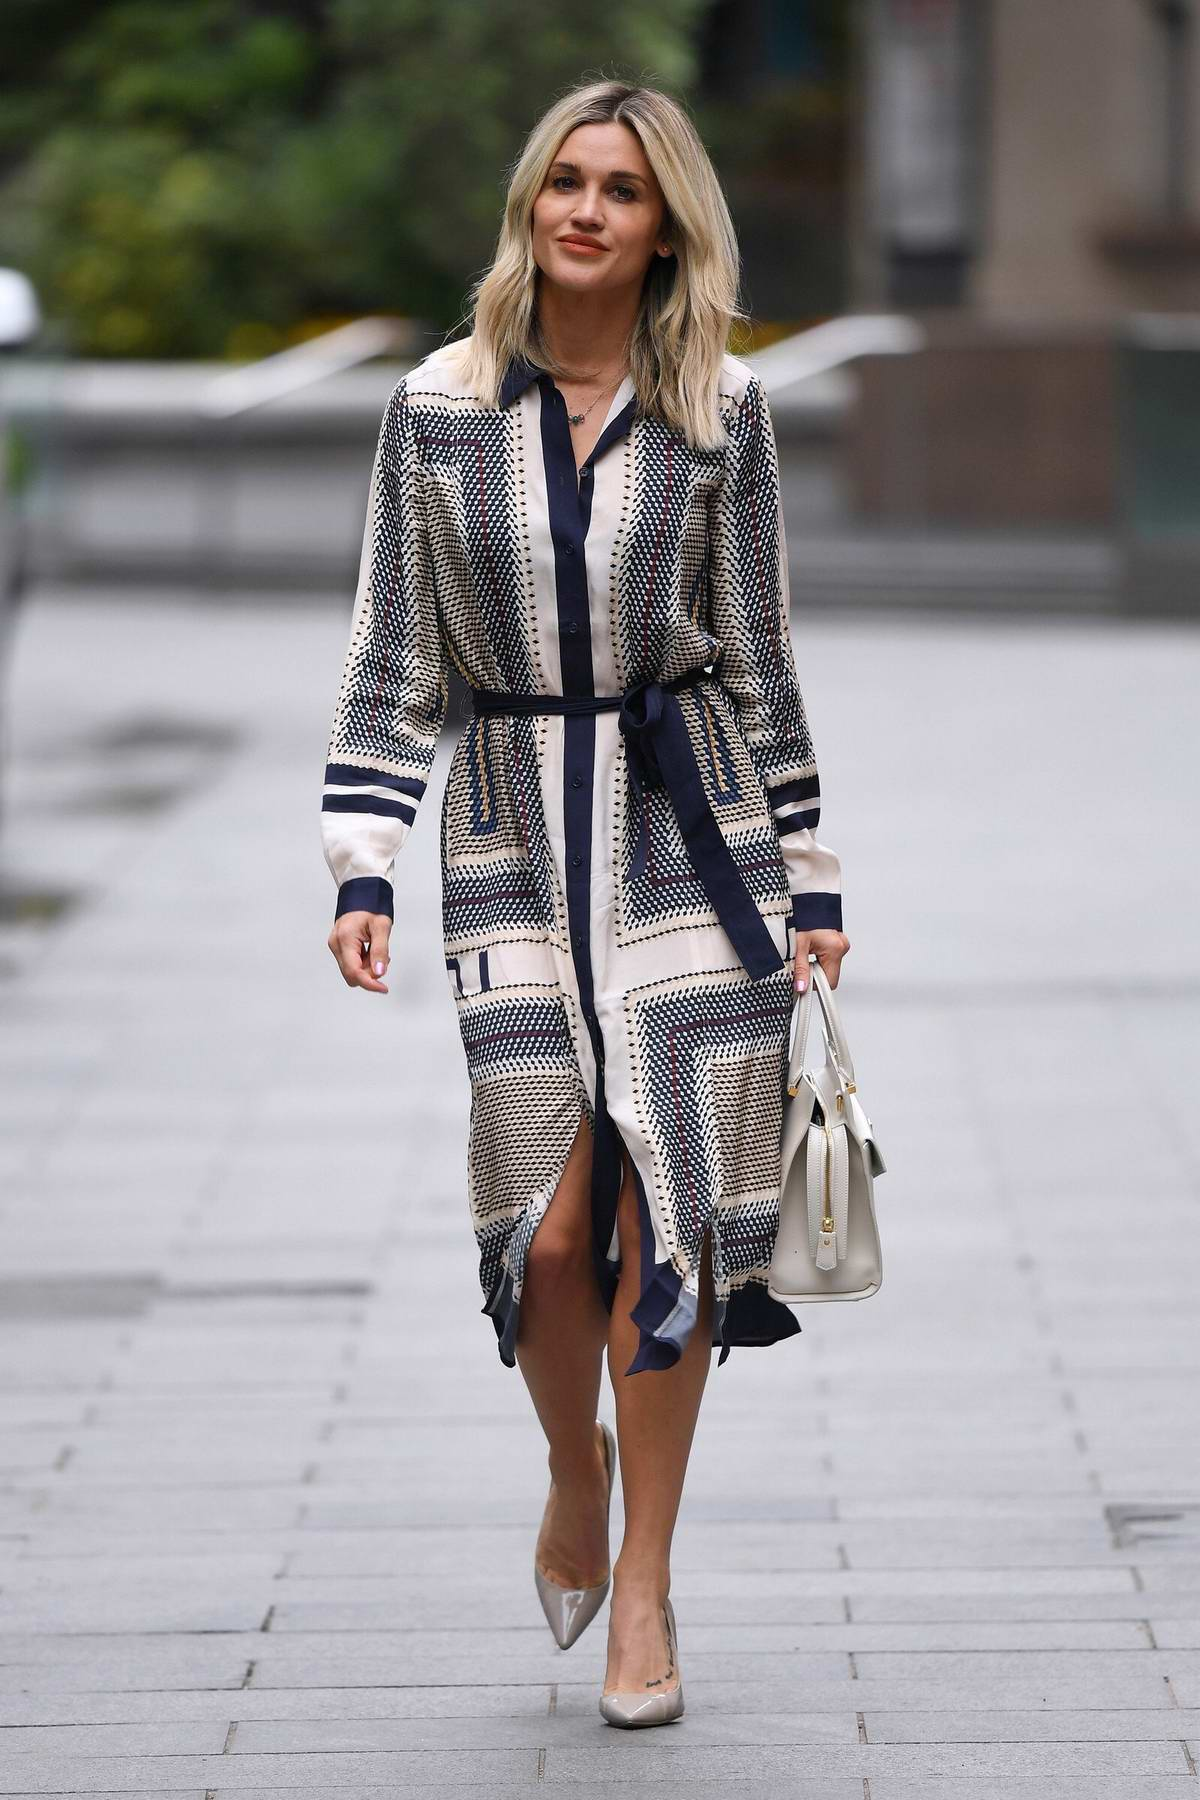 Ashley Roberts keeps it chic as she leaves Heart Radio in London, UK